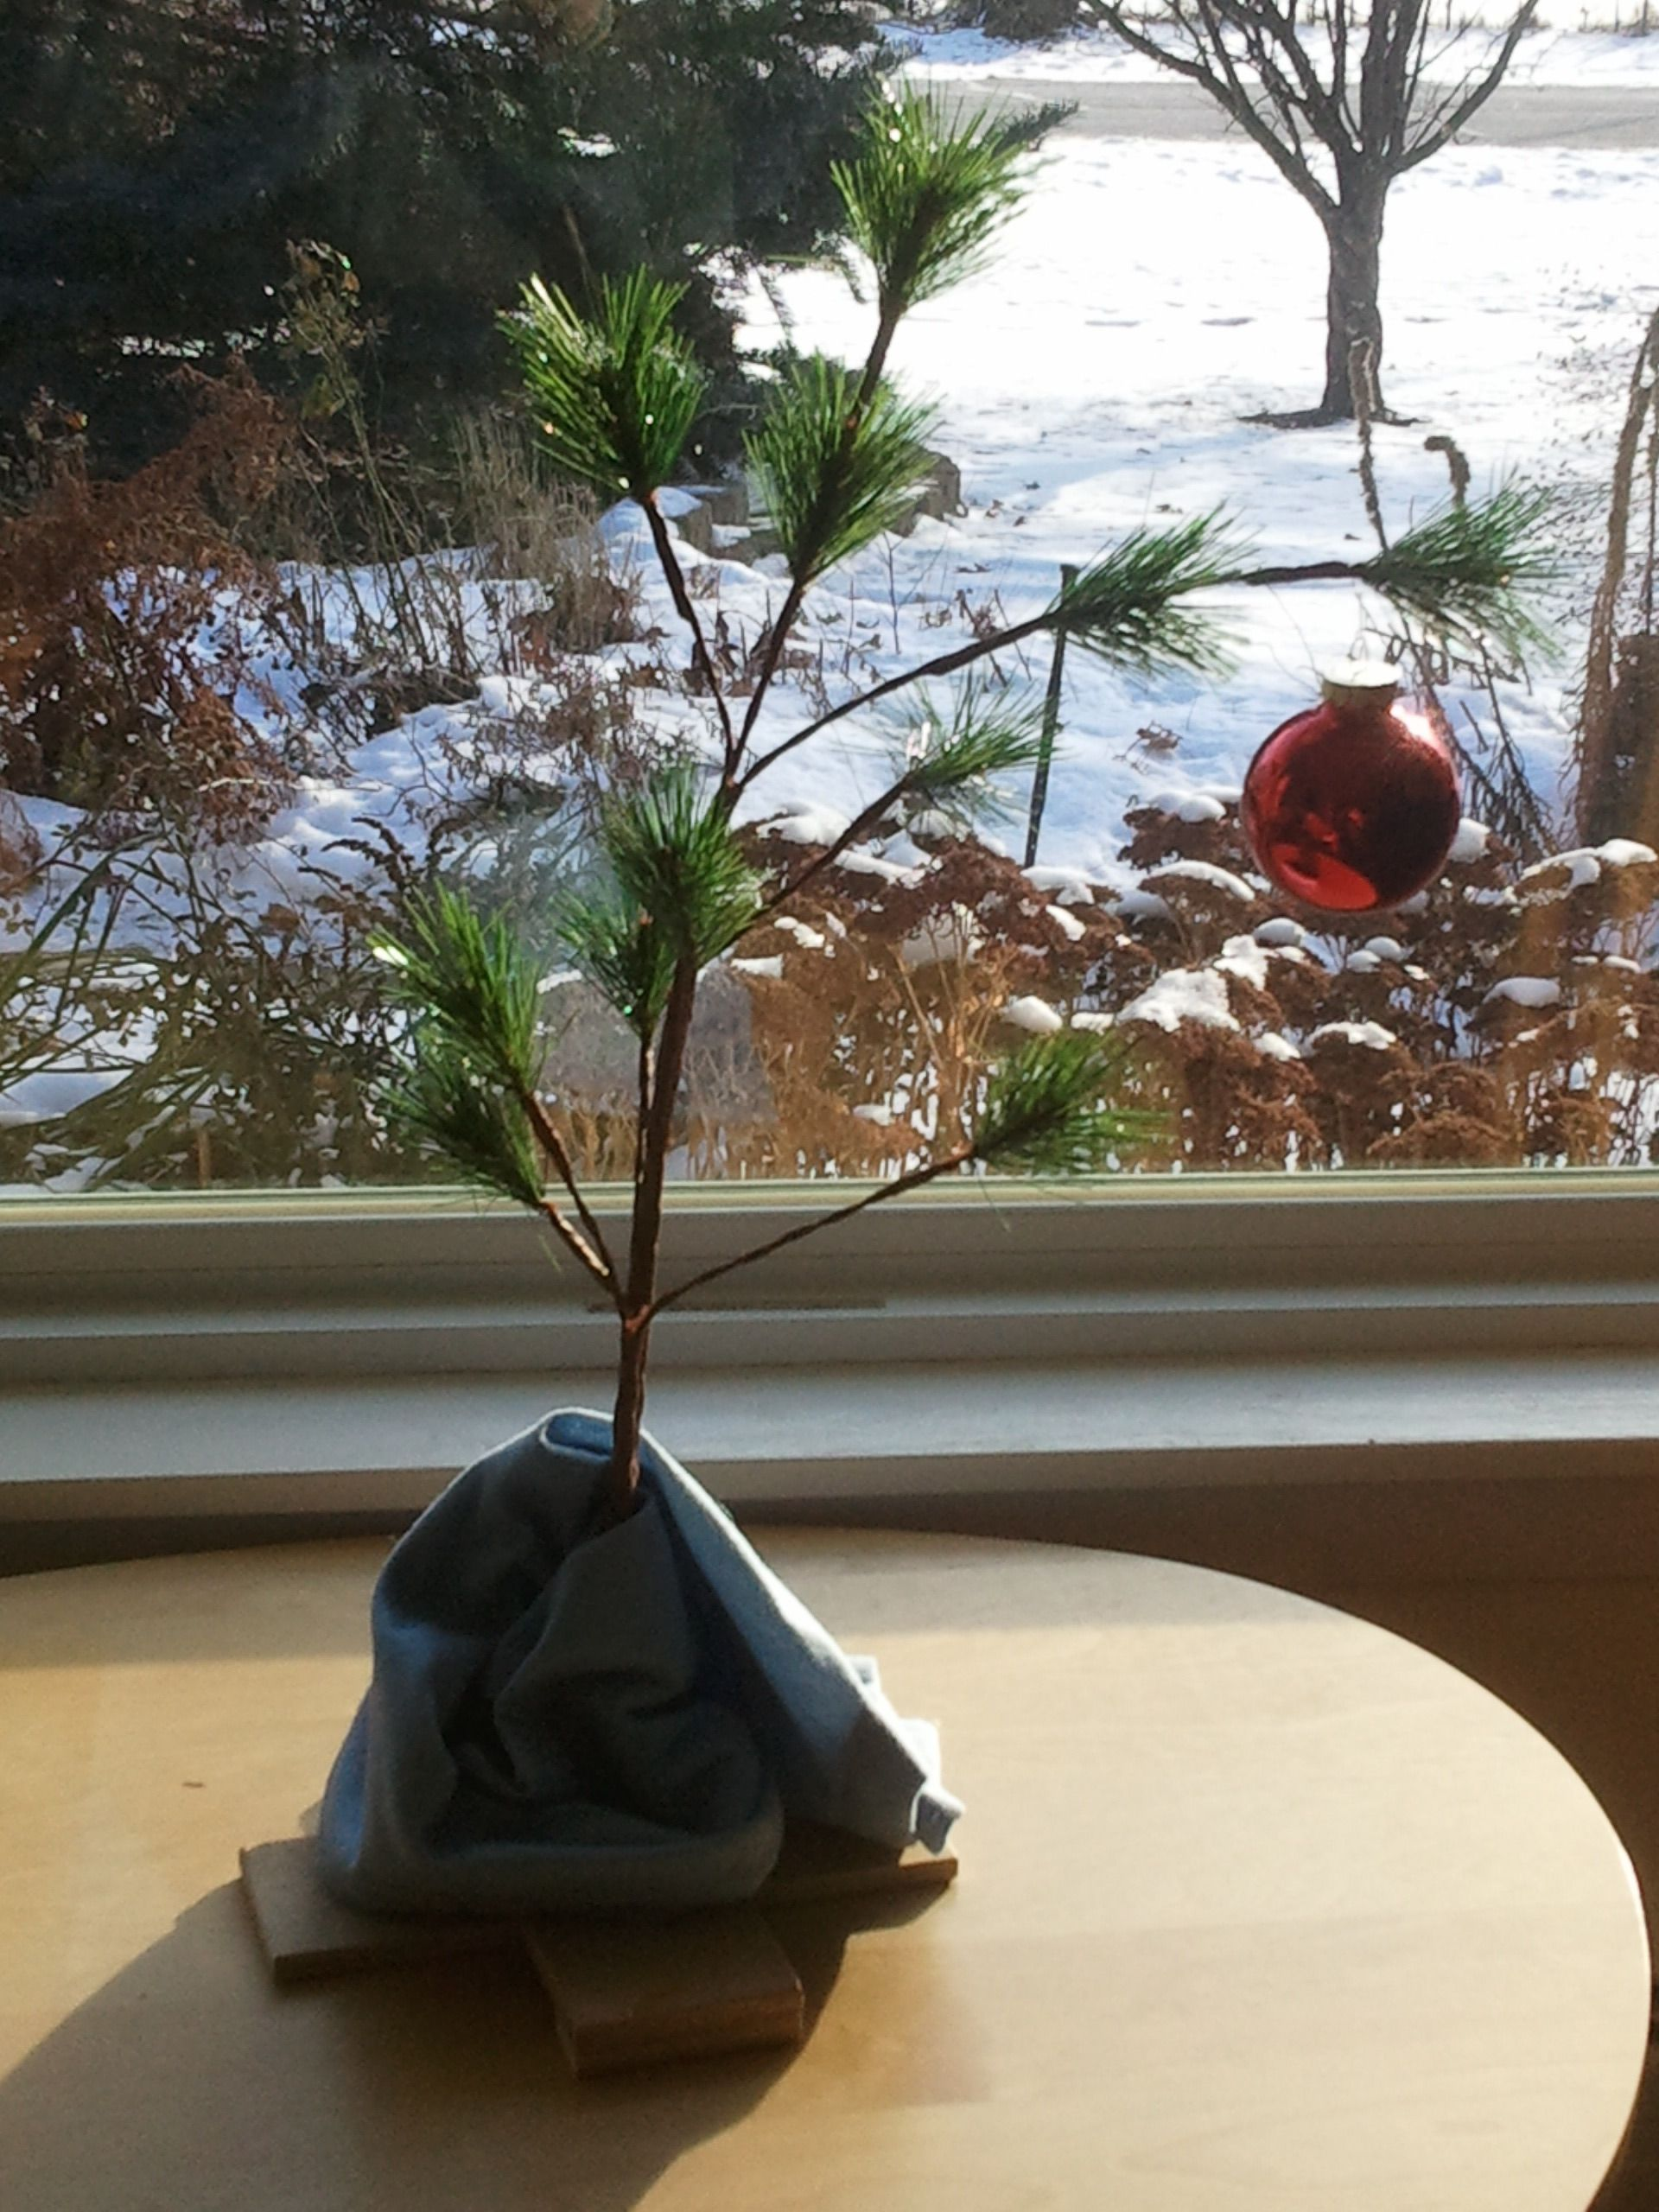 Image of a Charlie Brown Christmas tree